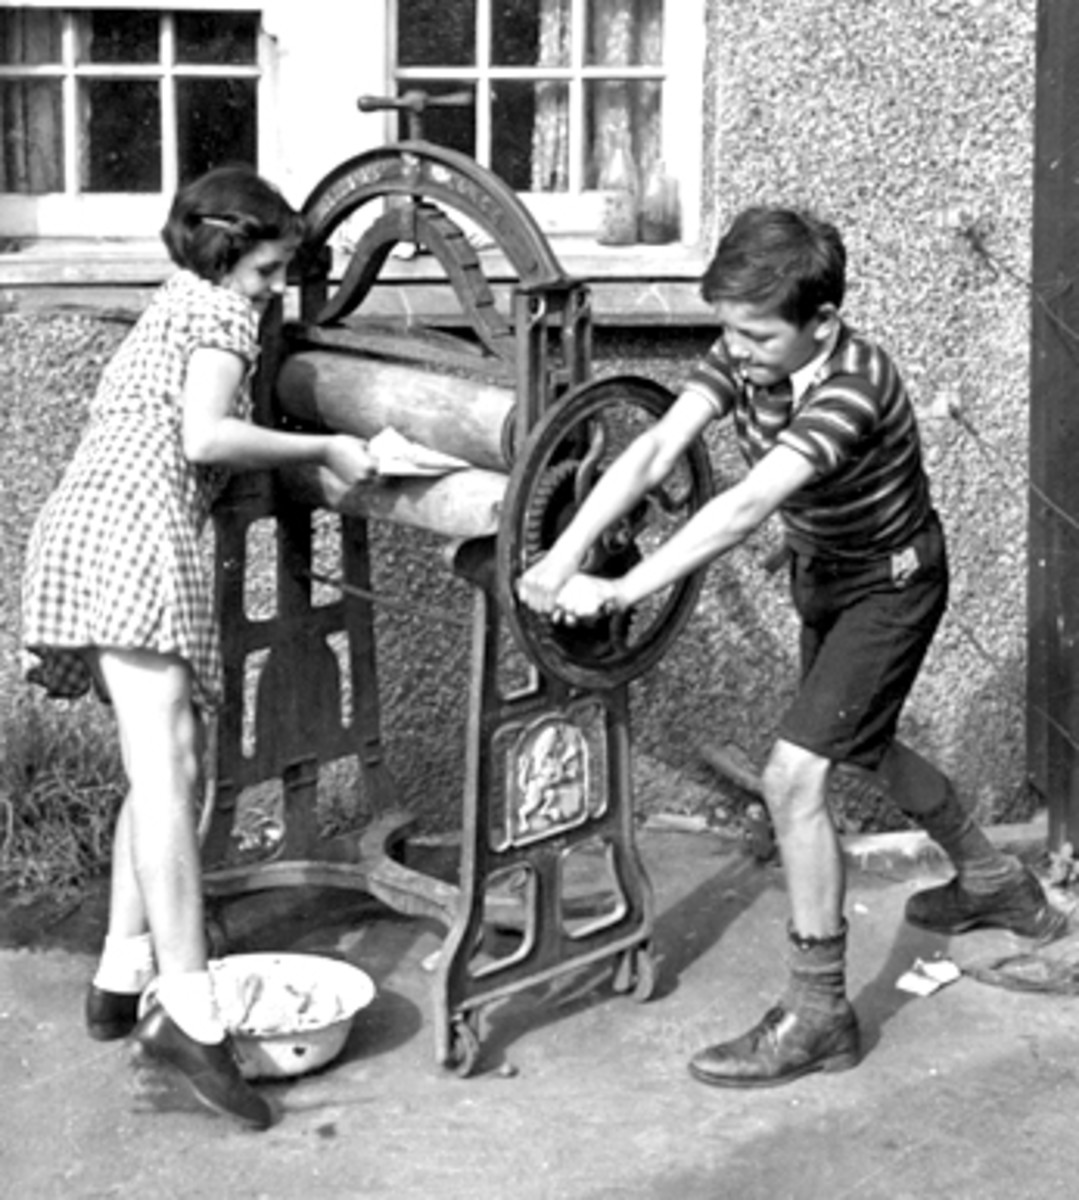 Mangling The Washing 13th September 1941: Peter and Pam putting washing through the mangle to wring it dry for their mother. Original Publication: Picture Post - 859 - The Life Of An Airman's Wife - pub. 1941 (Photo by Kurt Hutton / Picture Post / Ge